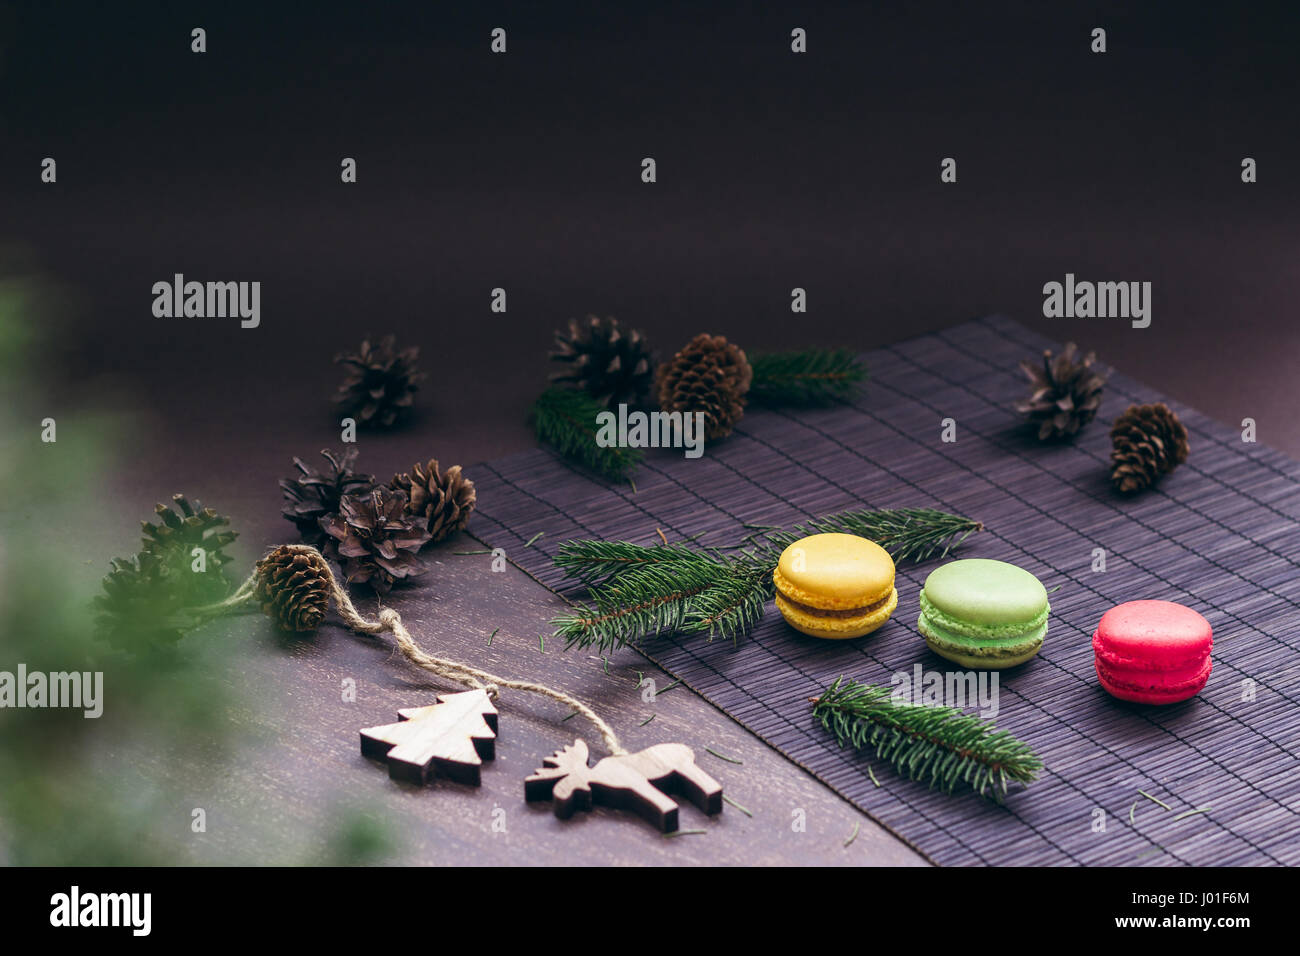 Three macaroons in a row on the table with fir tree branches, cones and Christmas ornaments - Stock Image